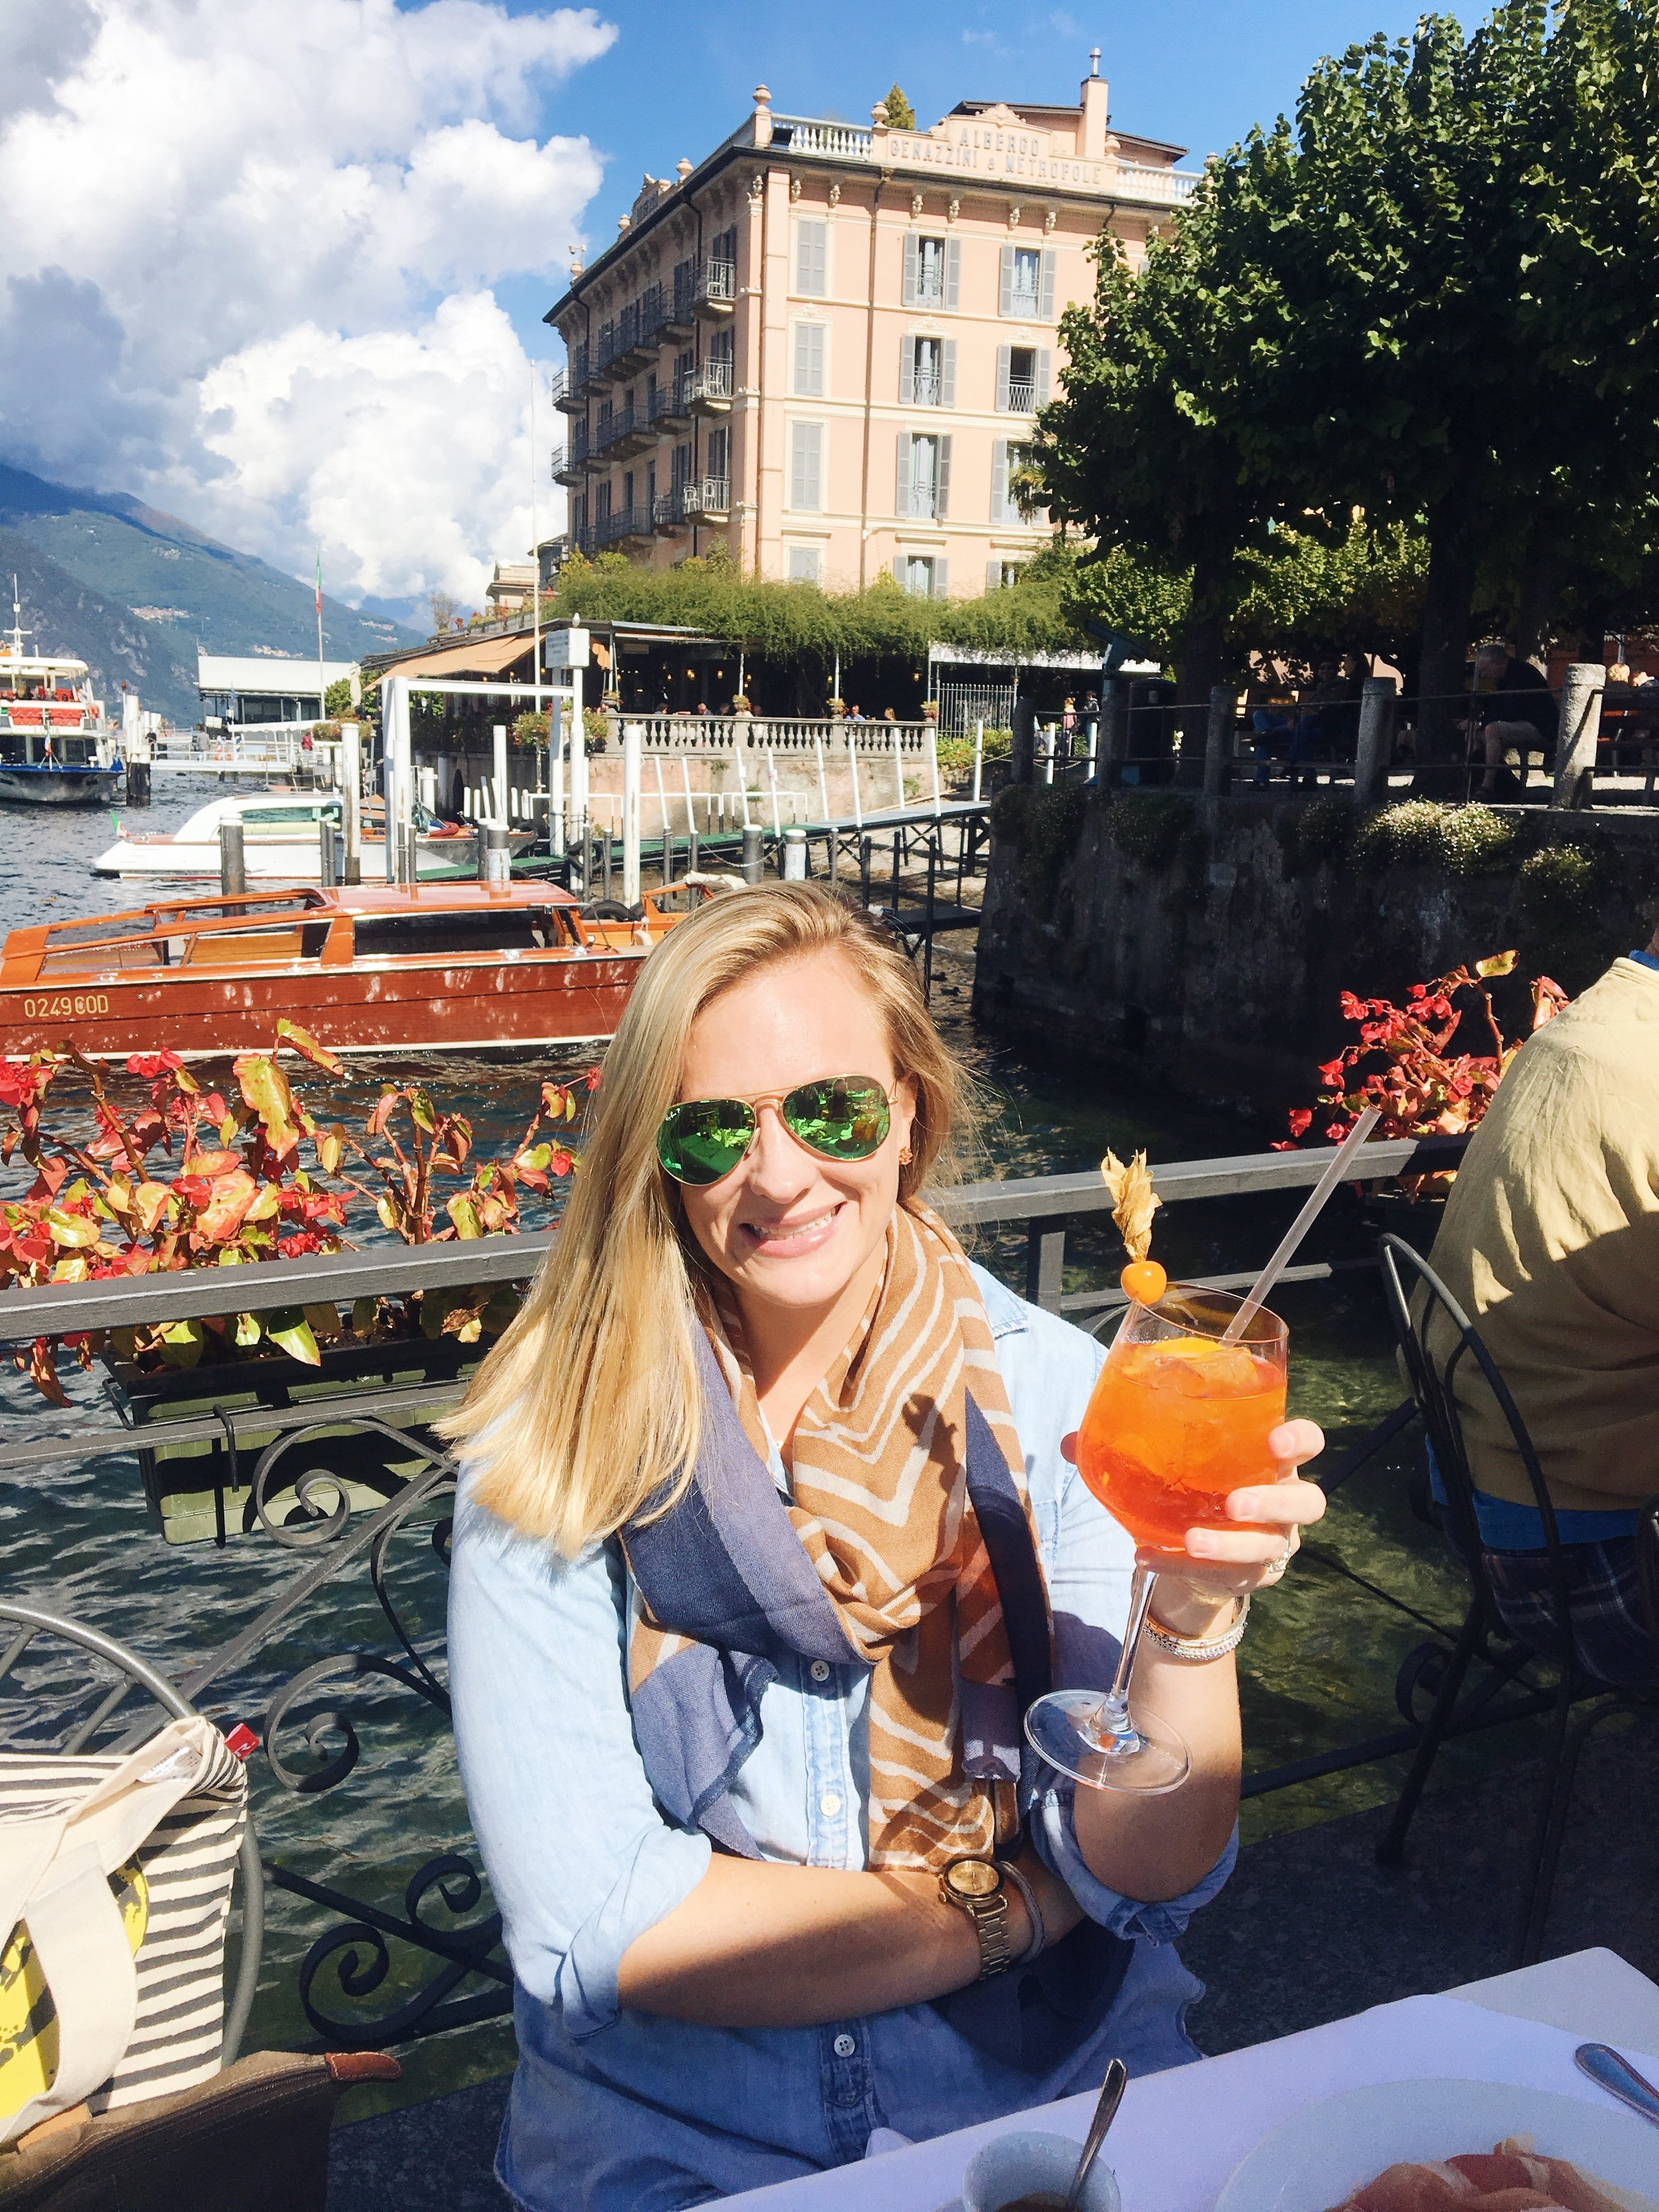 Annie sipping on her favorite - an Aperol spritz - while on her Milan design trip!